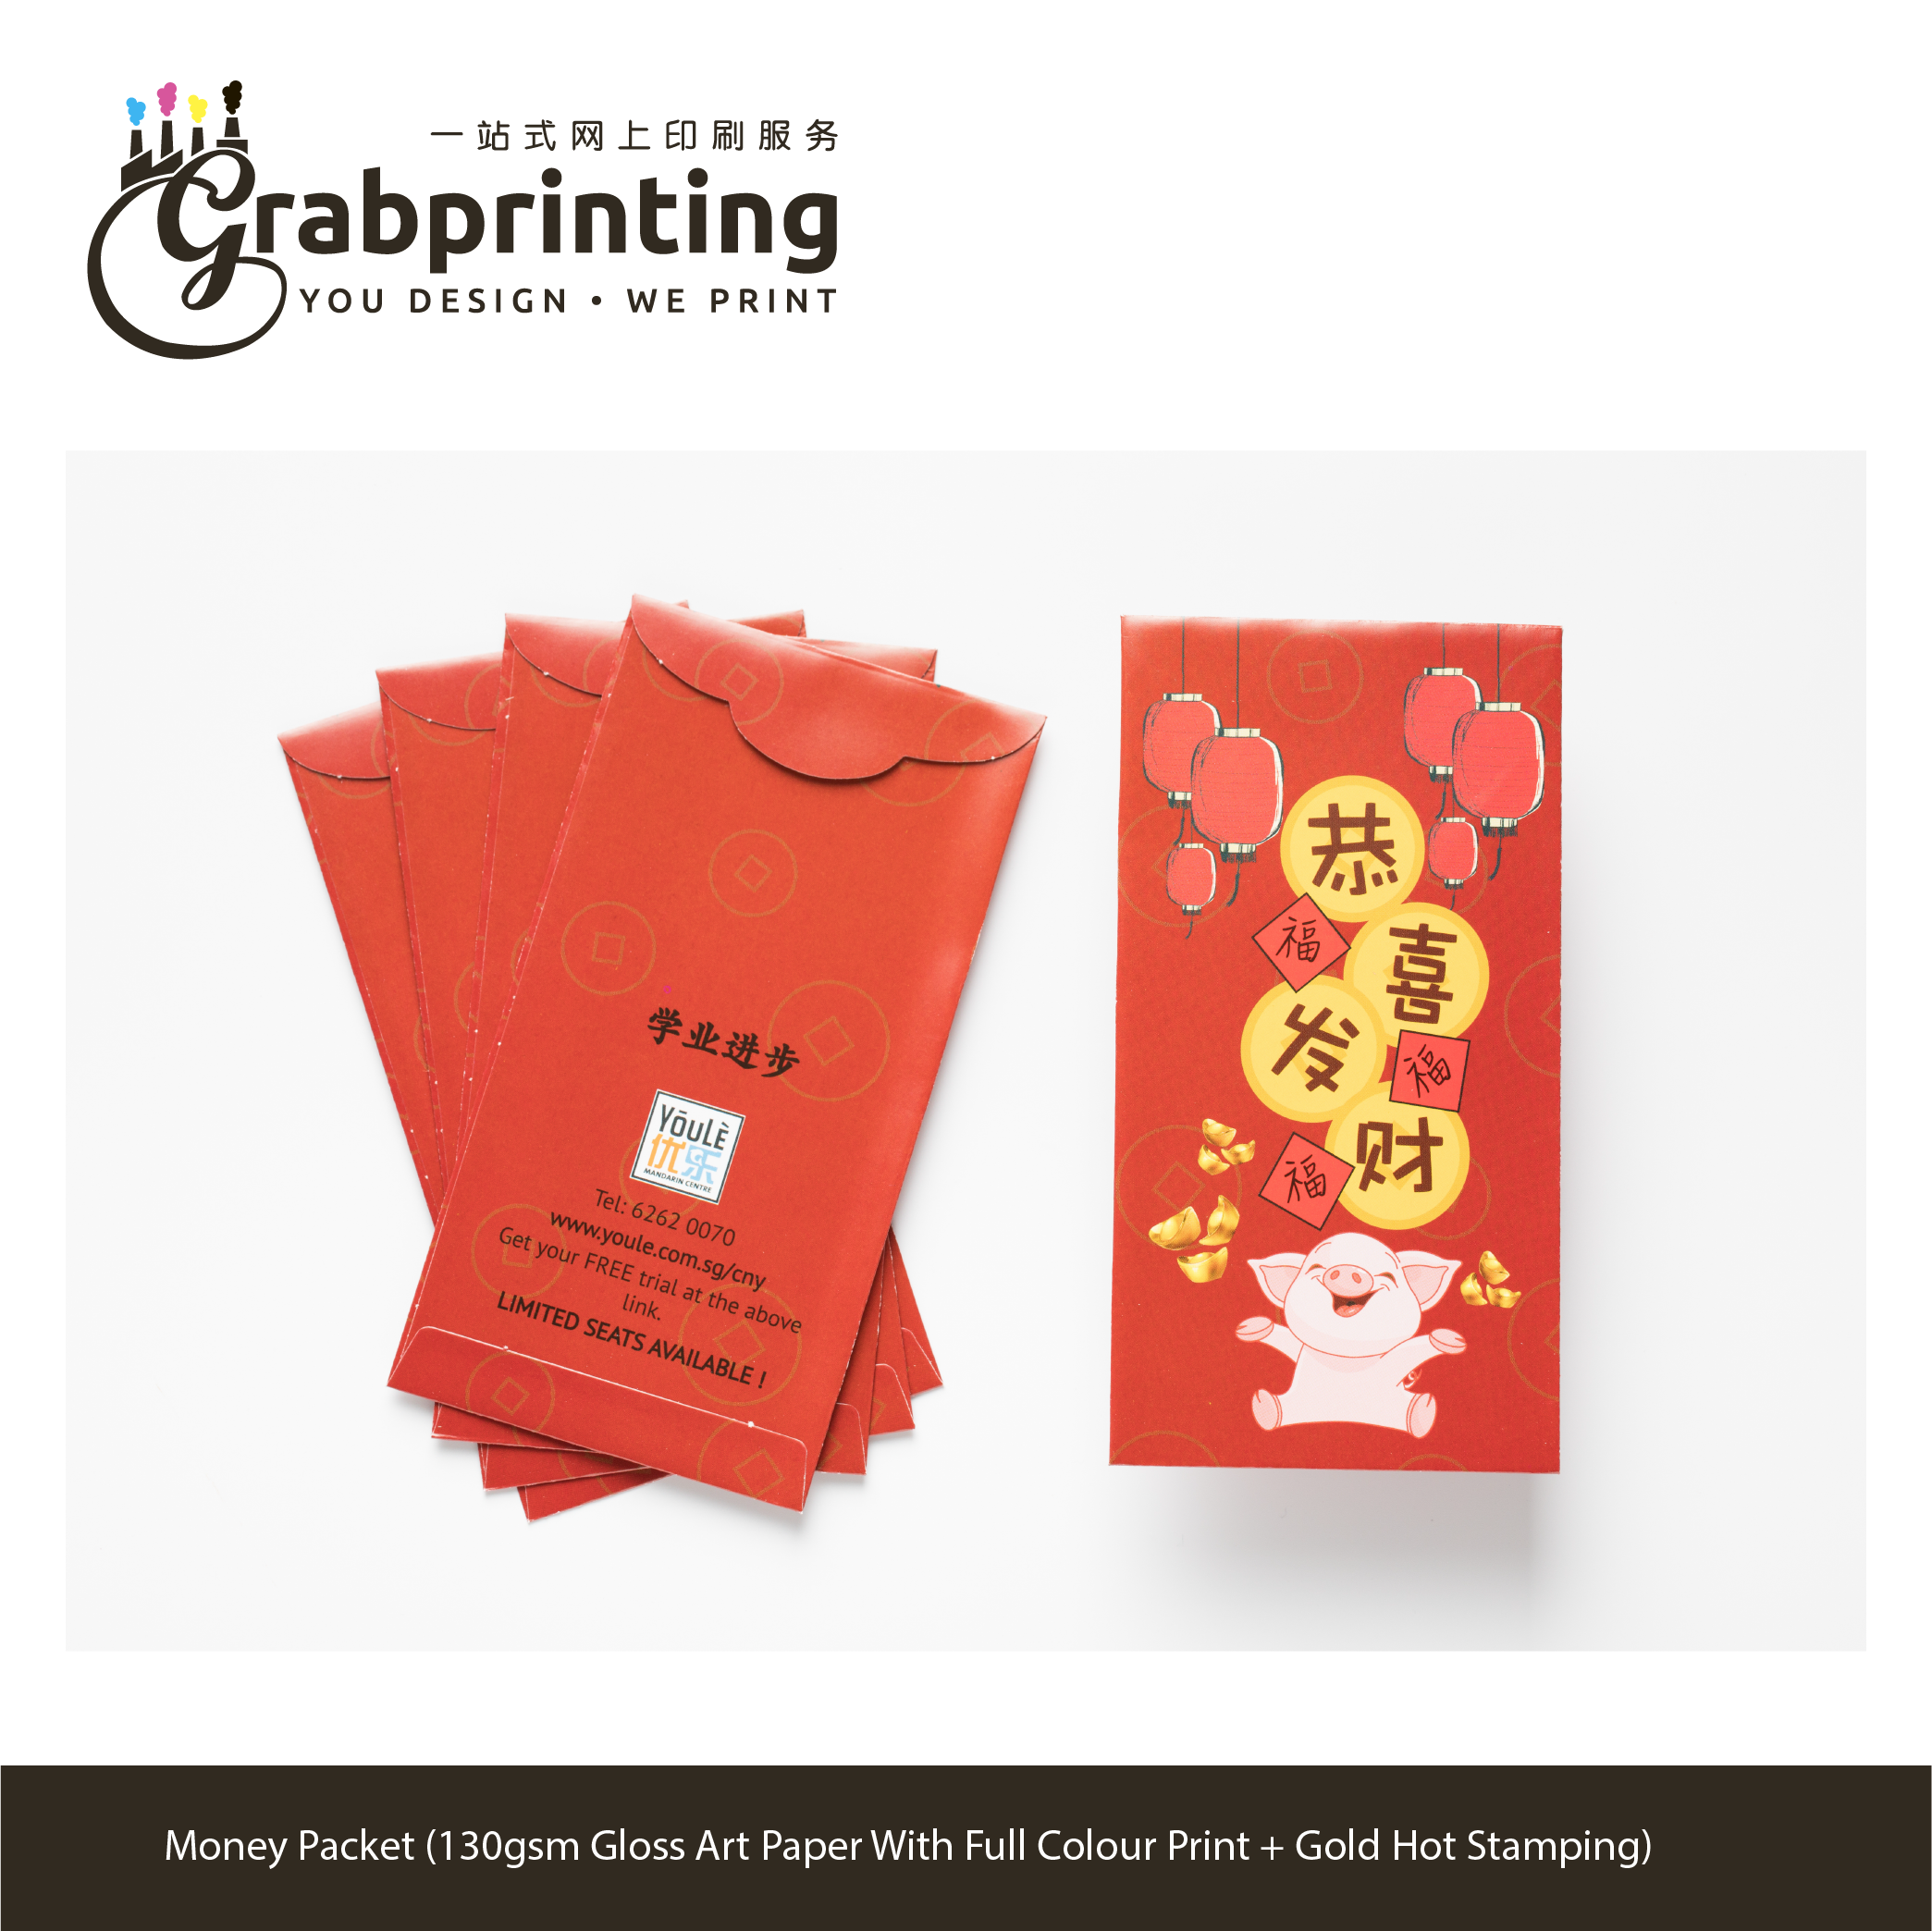 money packet printing Money Packet 130gsm Gloss Art Paper grabprinting 05 Money Packet 130gsm Gloss Art Paper With Full Colour Print Gold Hot Stamping 501px 501px